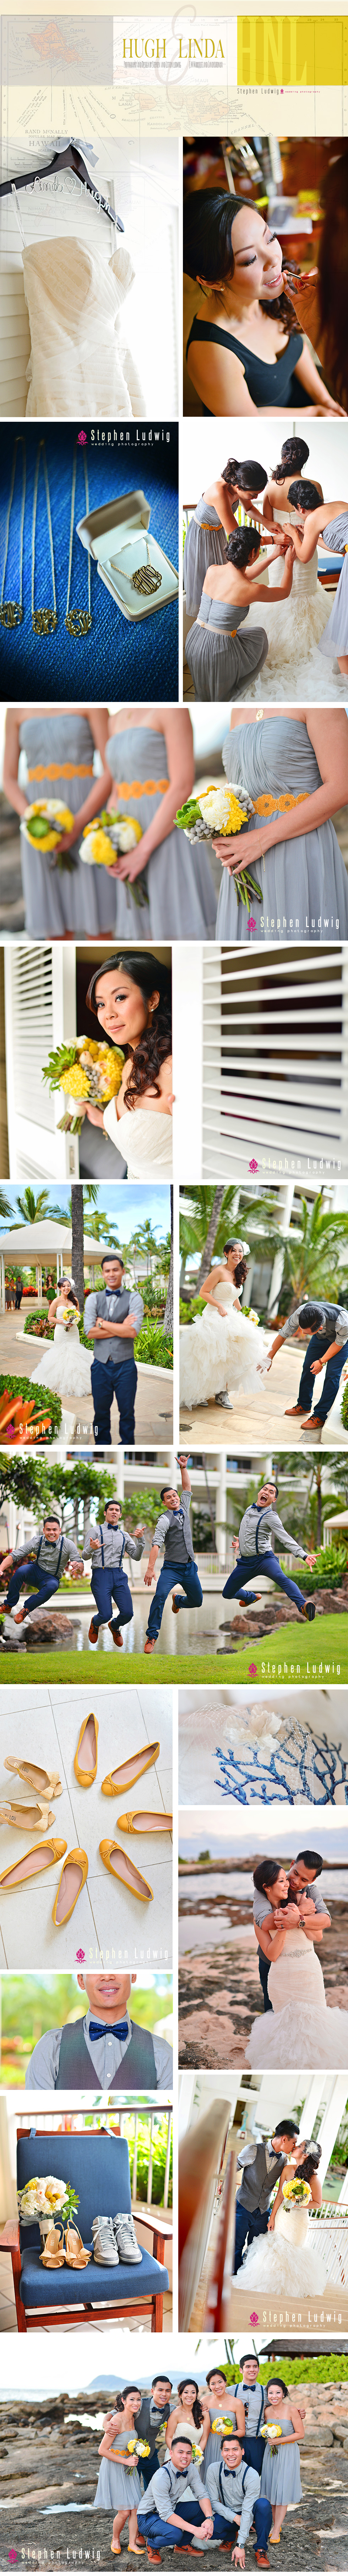 Hugh-and-Linda-Stephen-Ludwig-Hawaii-Wedding-Photography-1